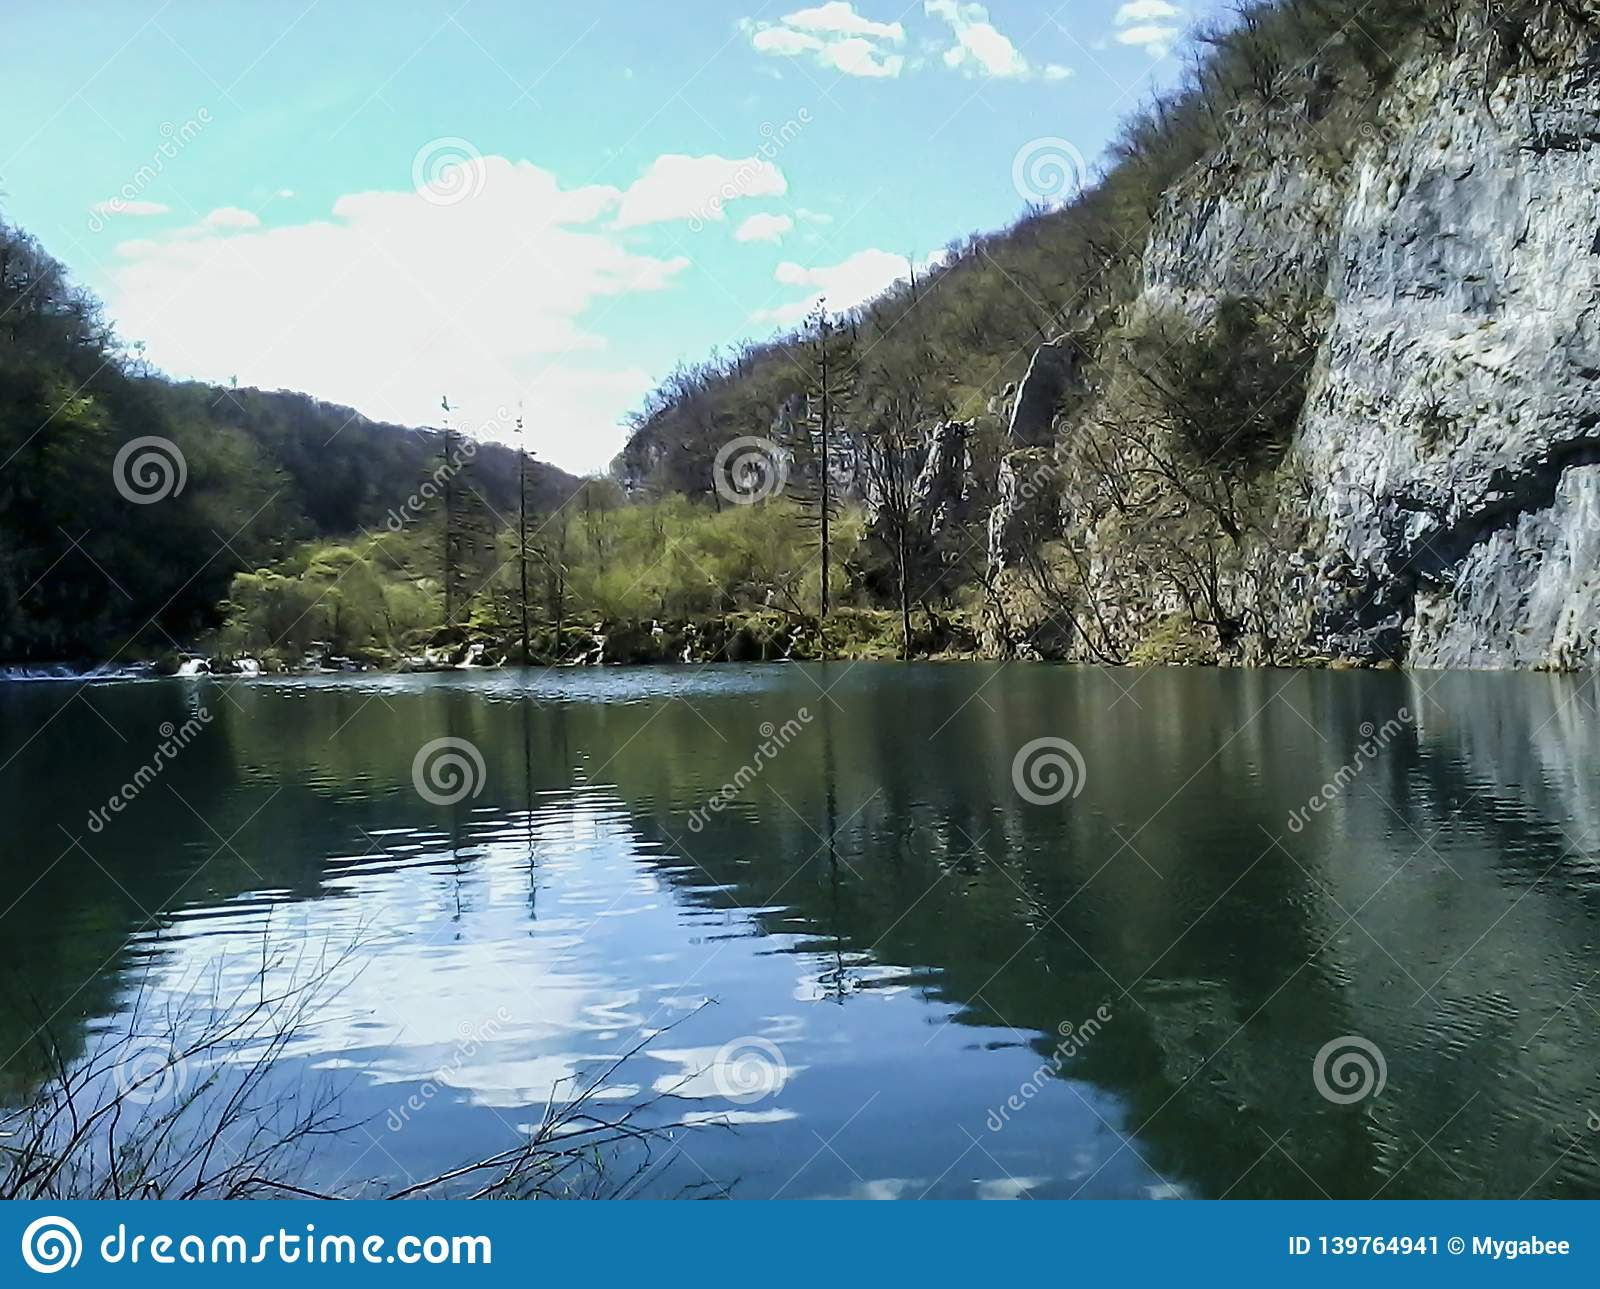 Plitvice Lakes Reflections, Croatia Stock Image - Image of